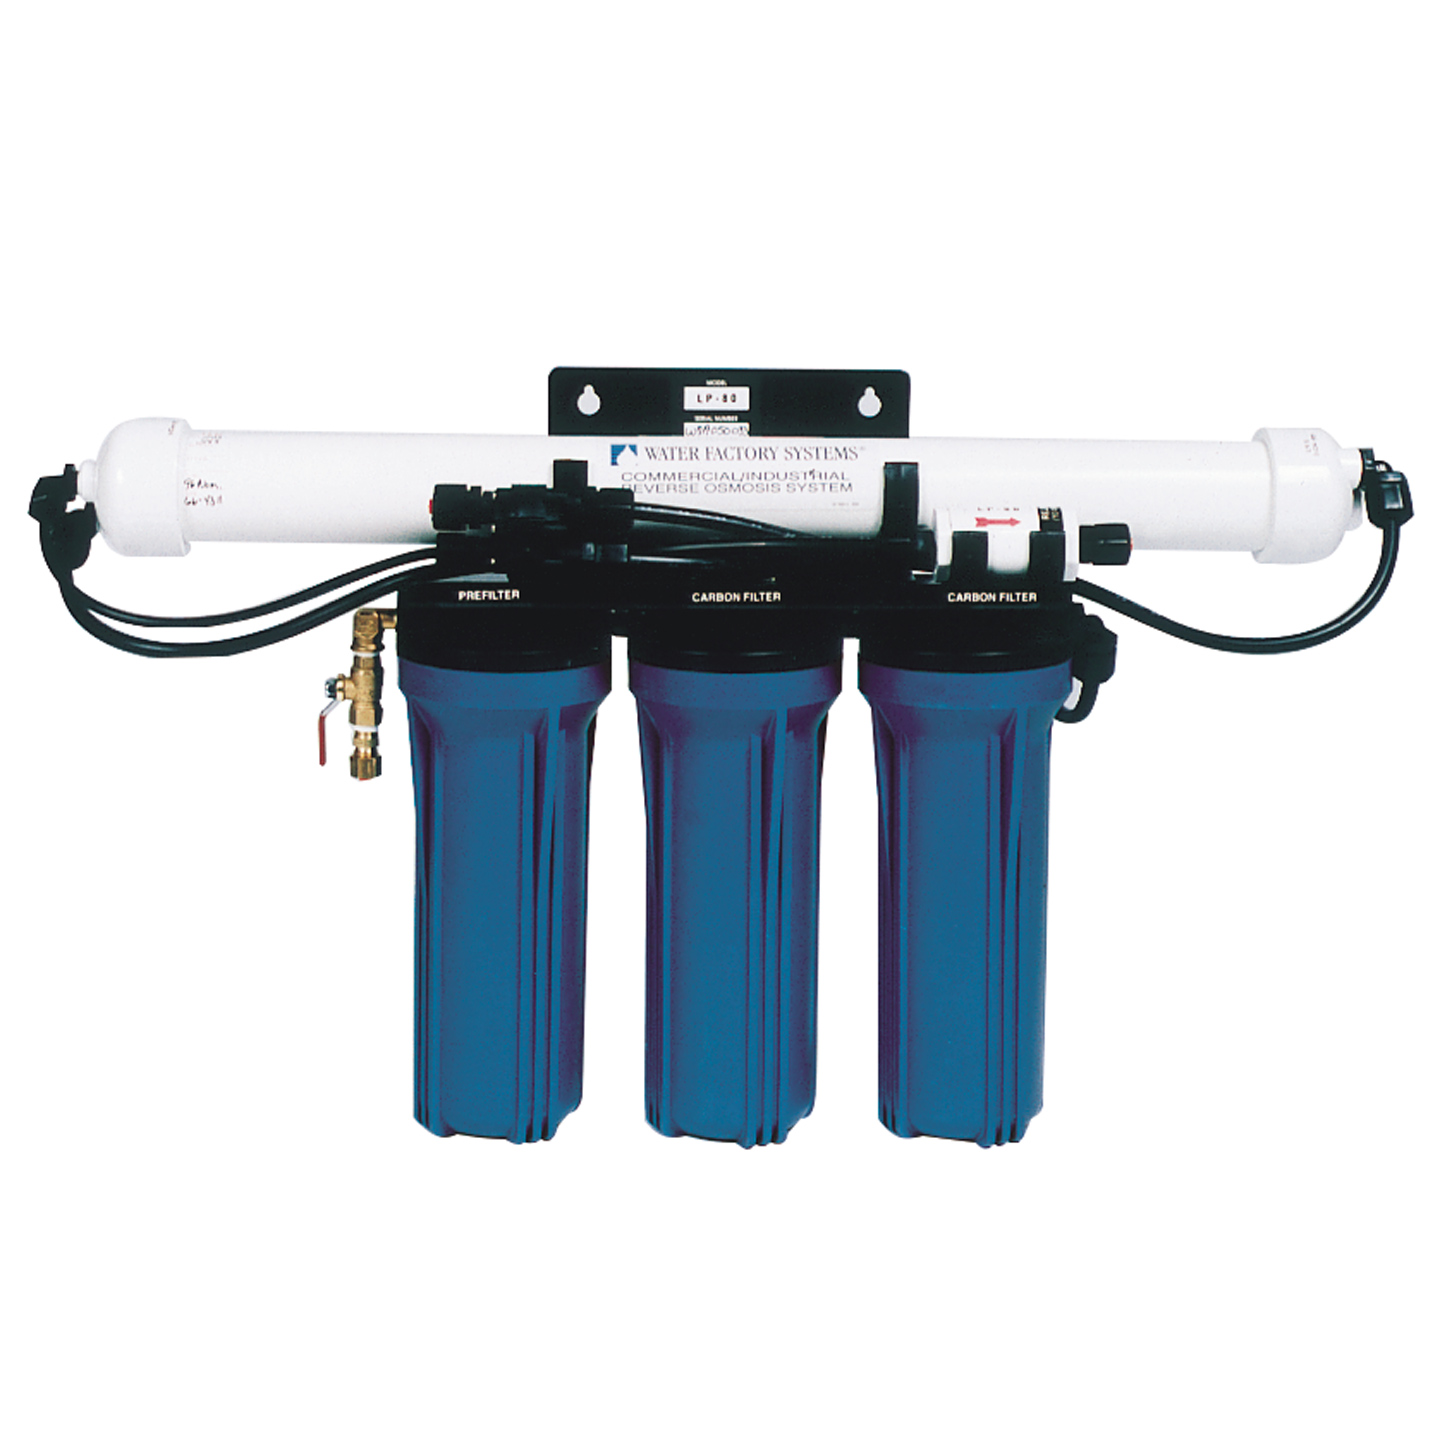 LP-40 CUNO Water Factory Commercial Reverse Osmosis Water Filtration System